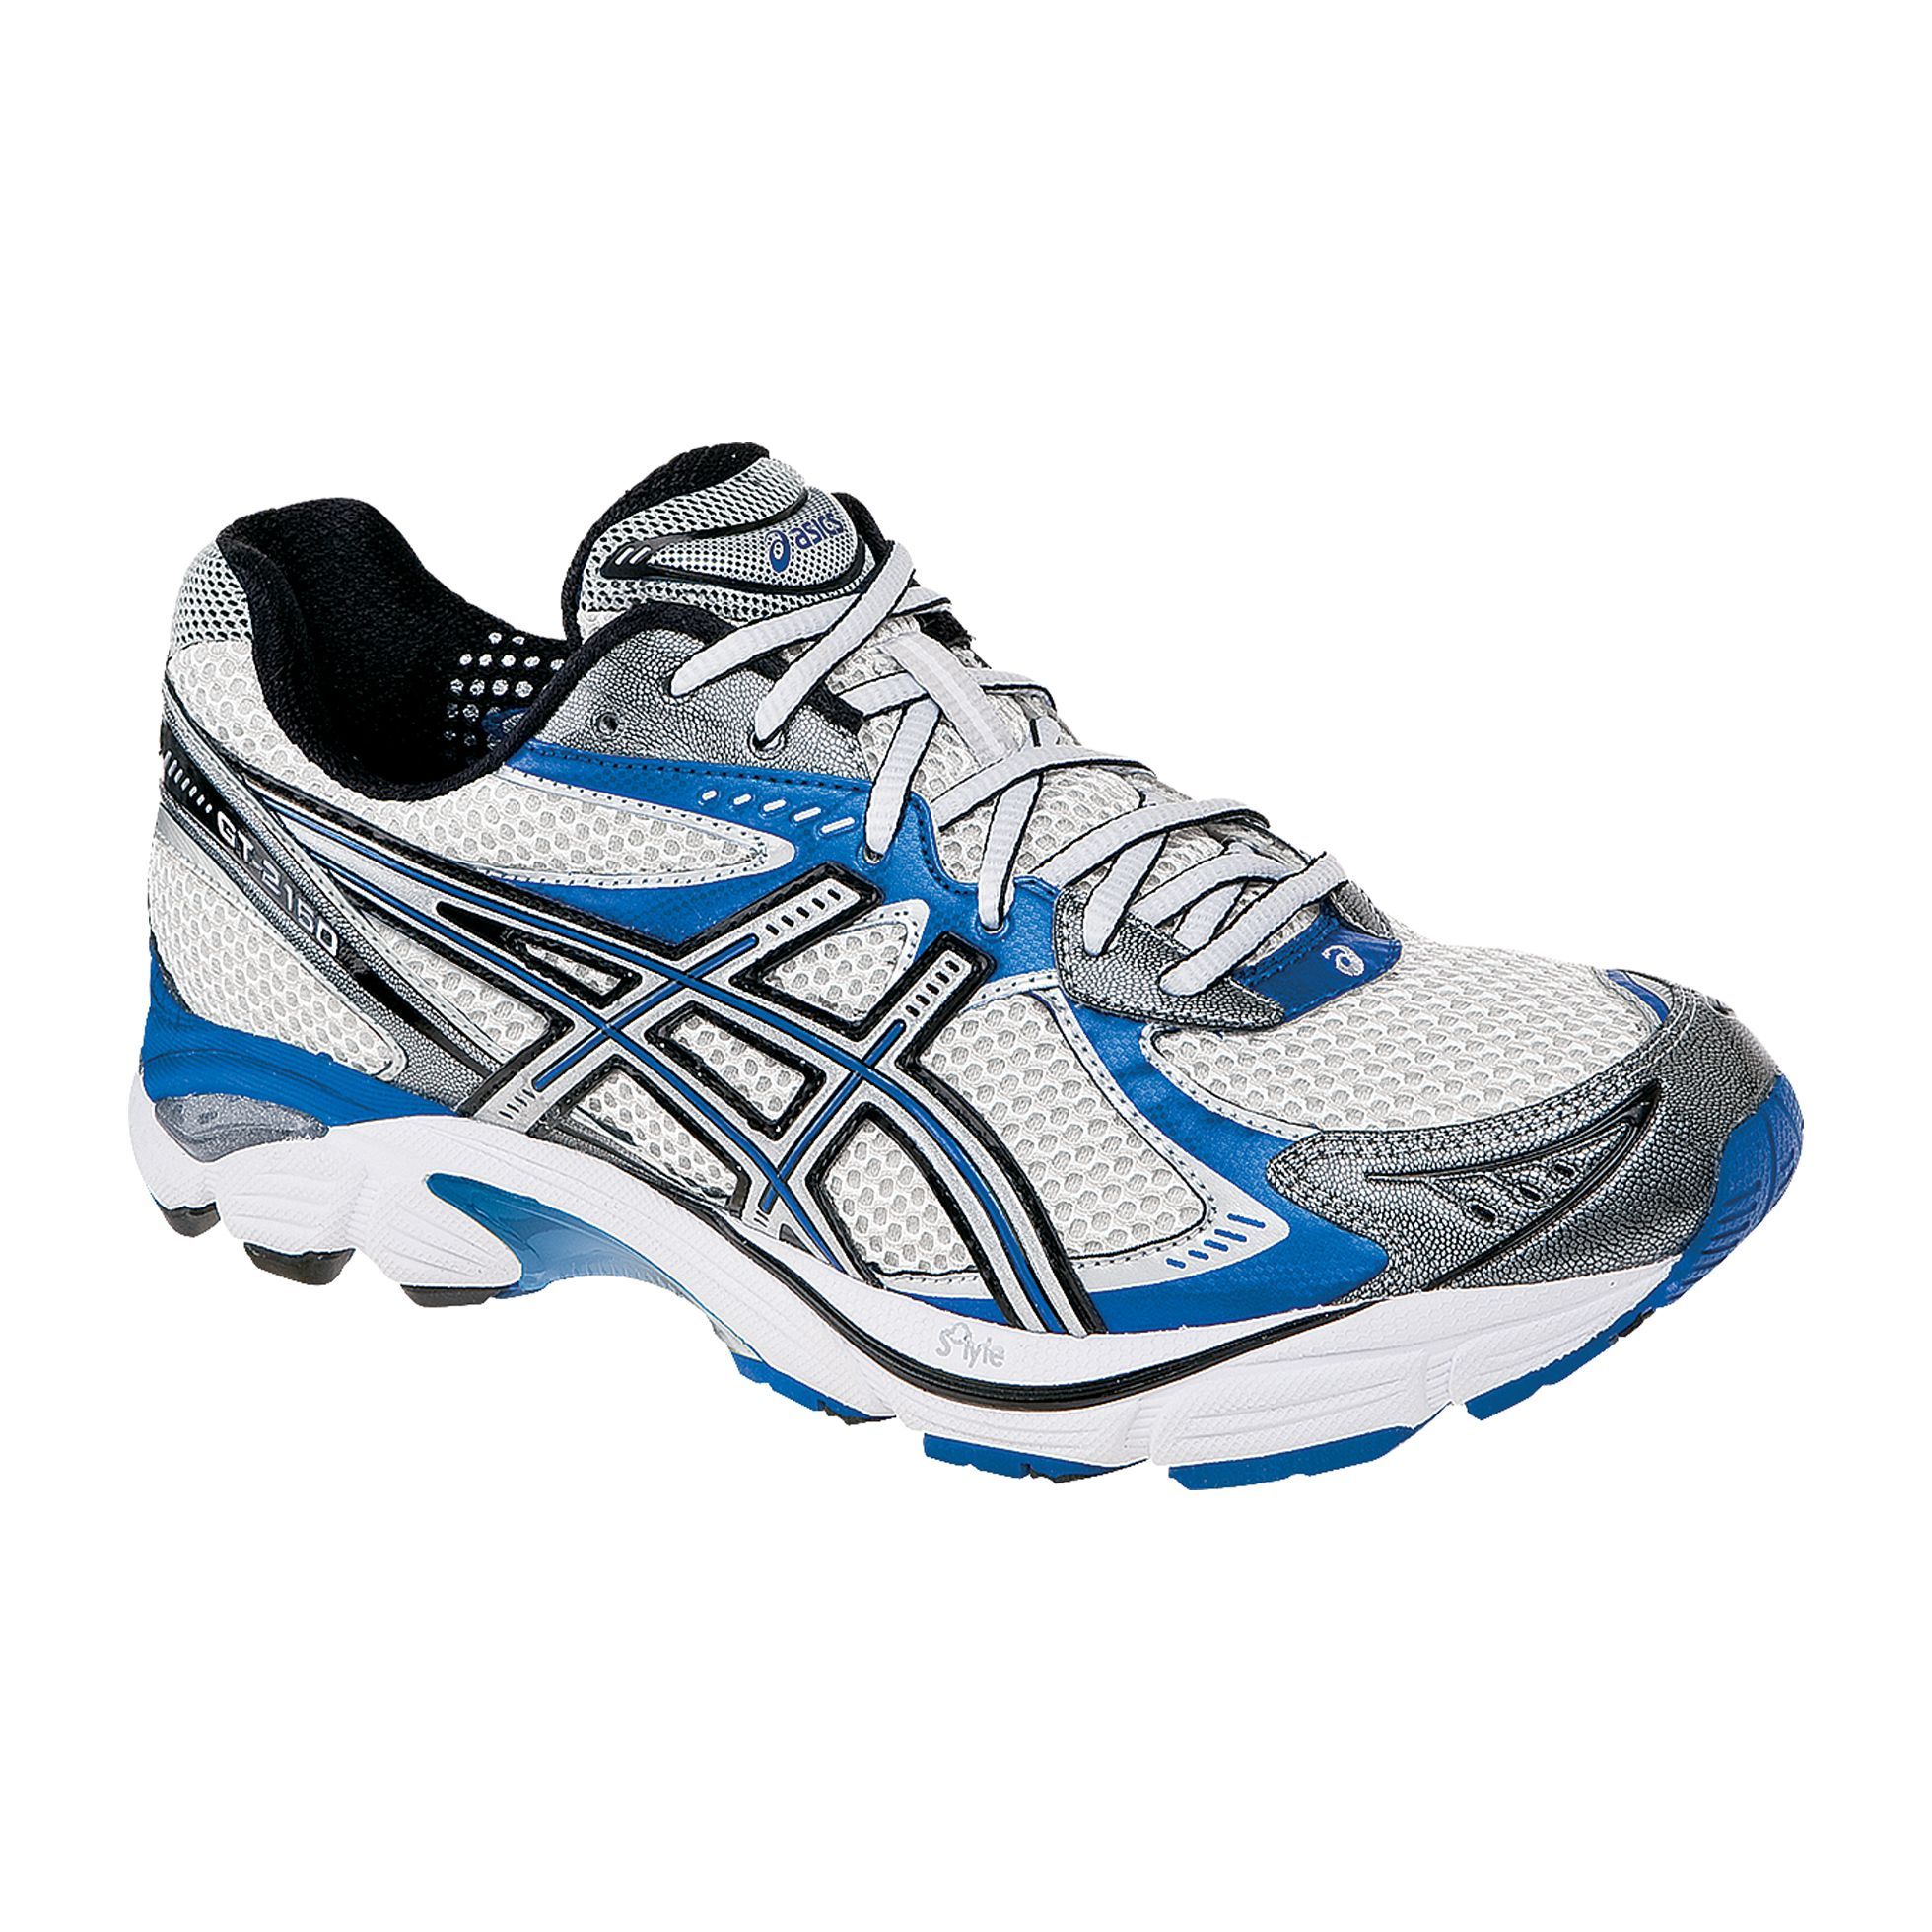 Men's Running Asics Style GT-2160 - White/Royal Blue